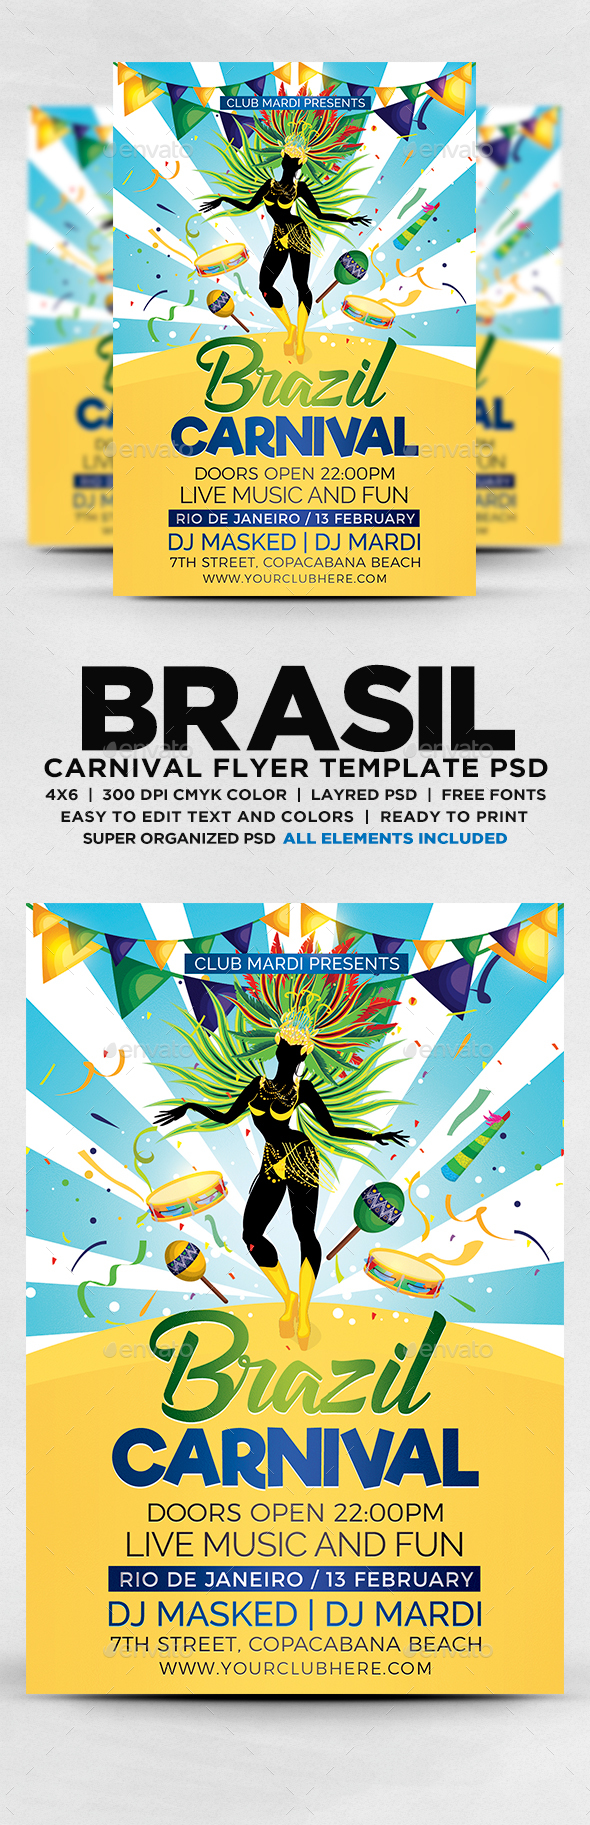 Brazilian Carnival Flyer Flyers Print Templates Flyer